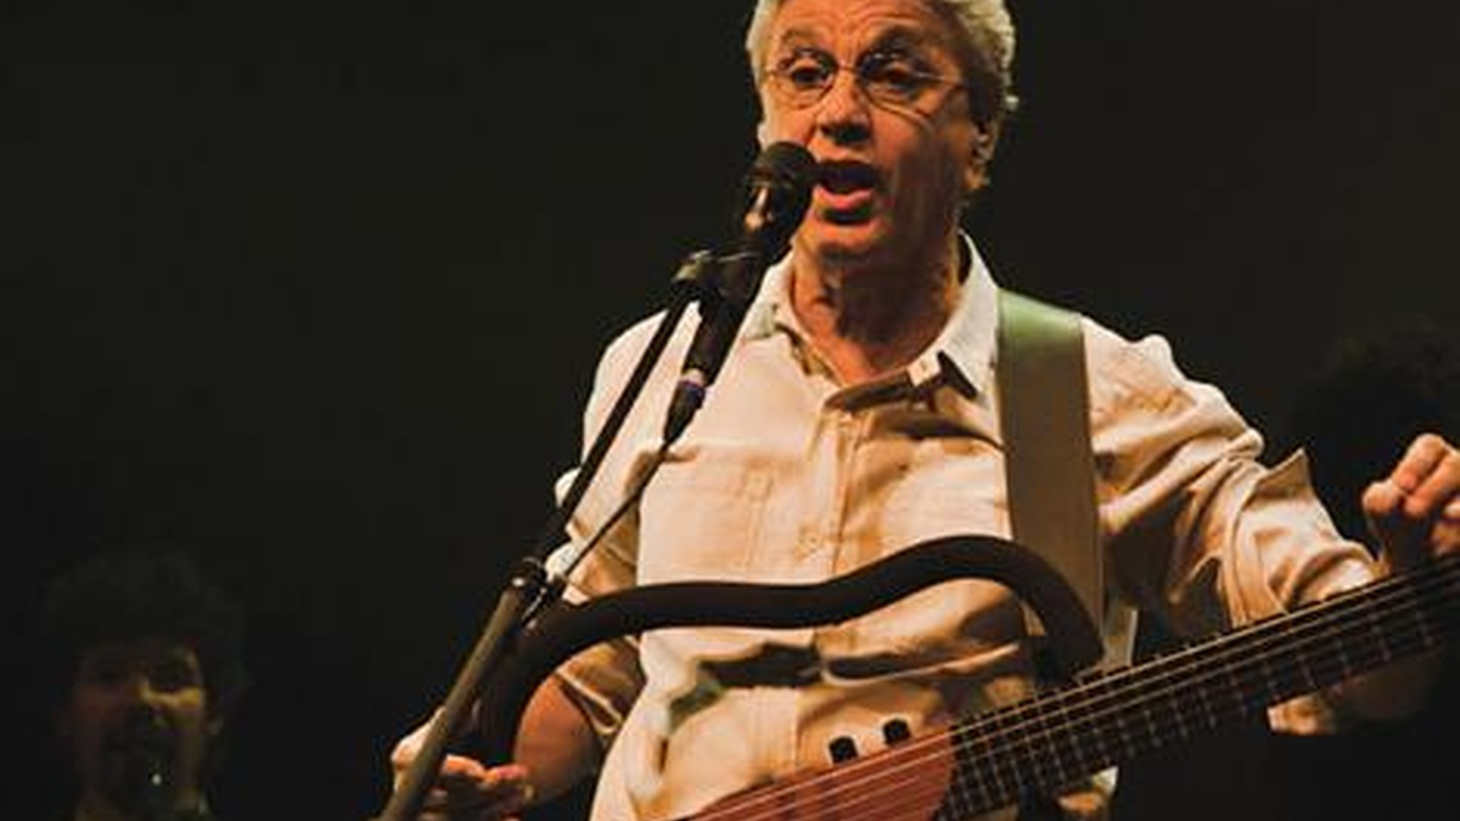 Red Hot and Rio 2, a tribute to the Brazilian Tropicalia movement of the late 60's, features a brilliant assortment of artist collaborations, including Caetano Veloso.